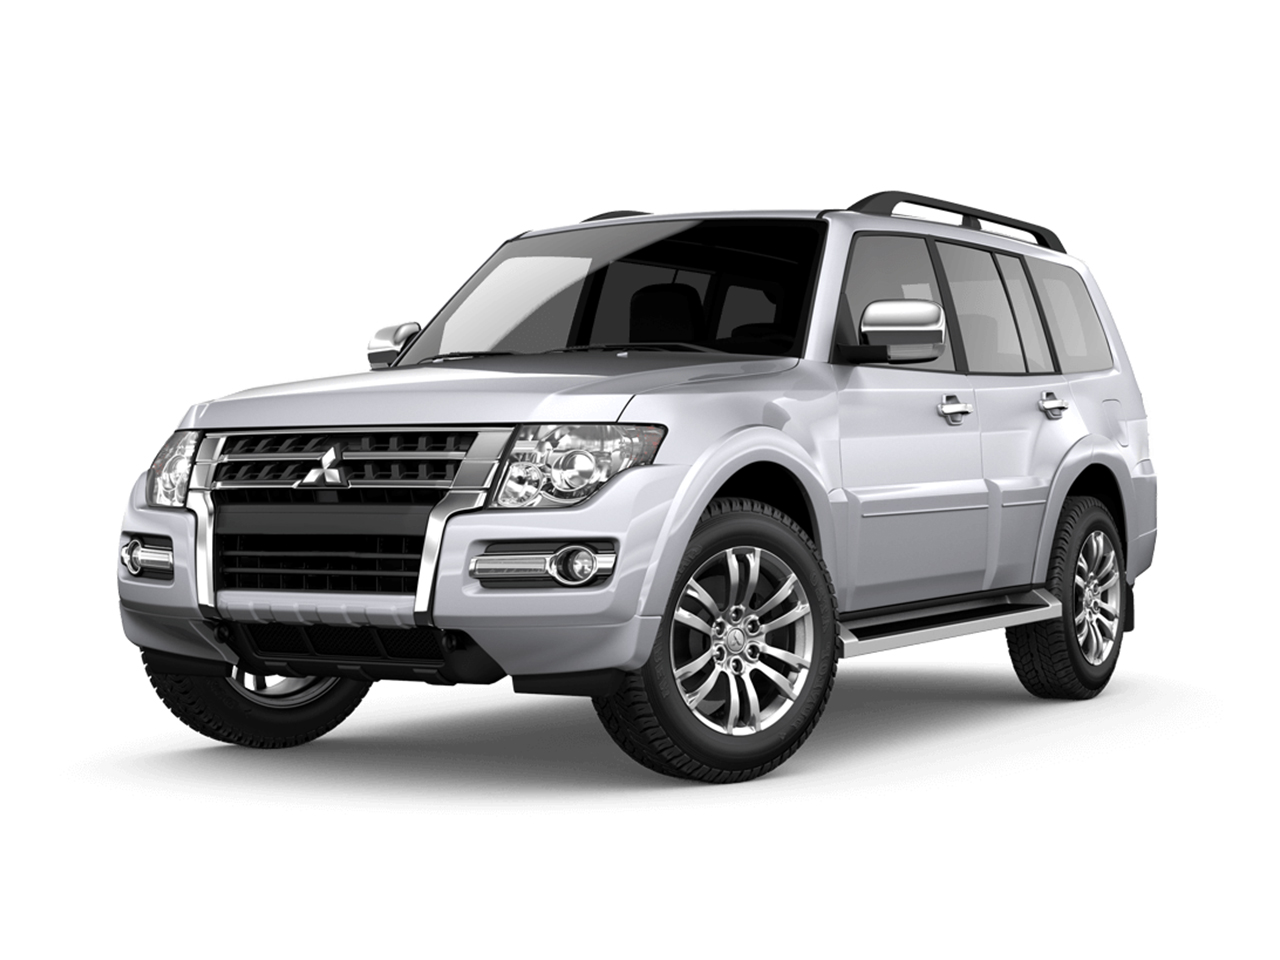 2017 mitsubishi pajero prices in uae gulf specs reviews for dubai abu dhabi and sharjah. Black Bedroom Furniture Sets. Home Design Ideas